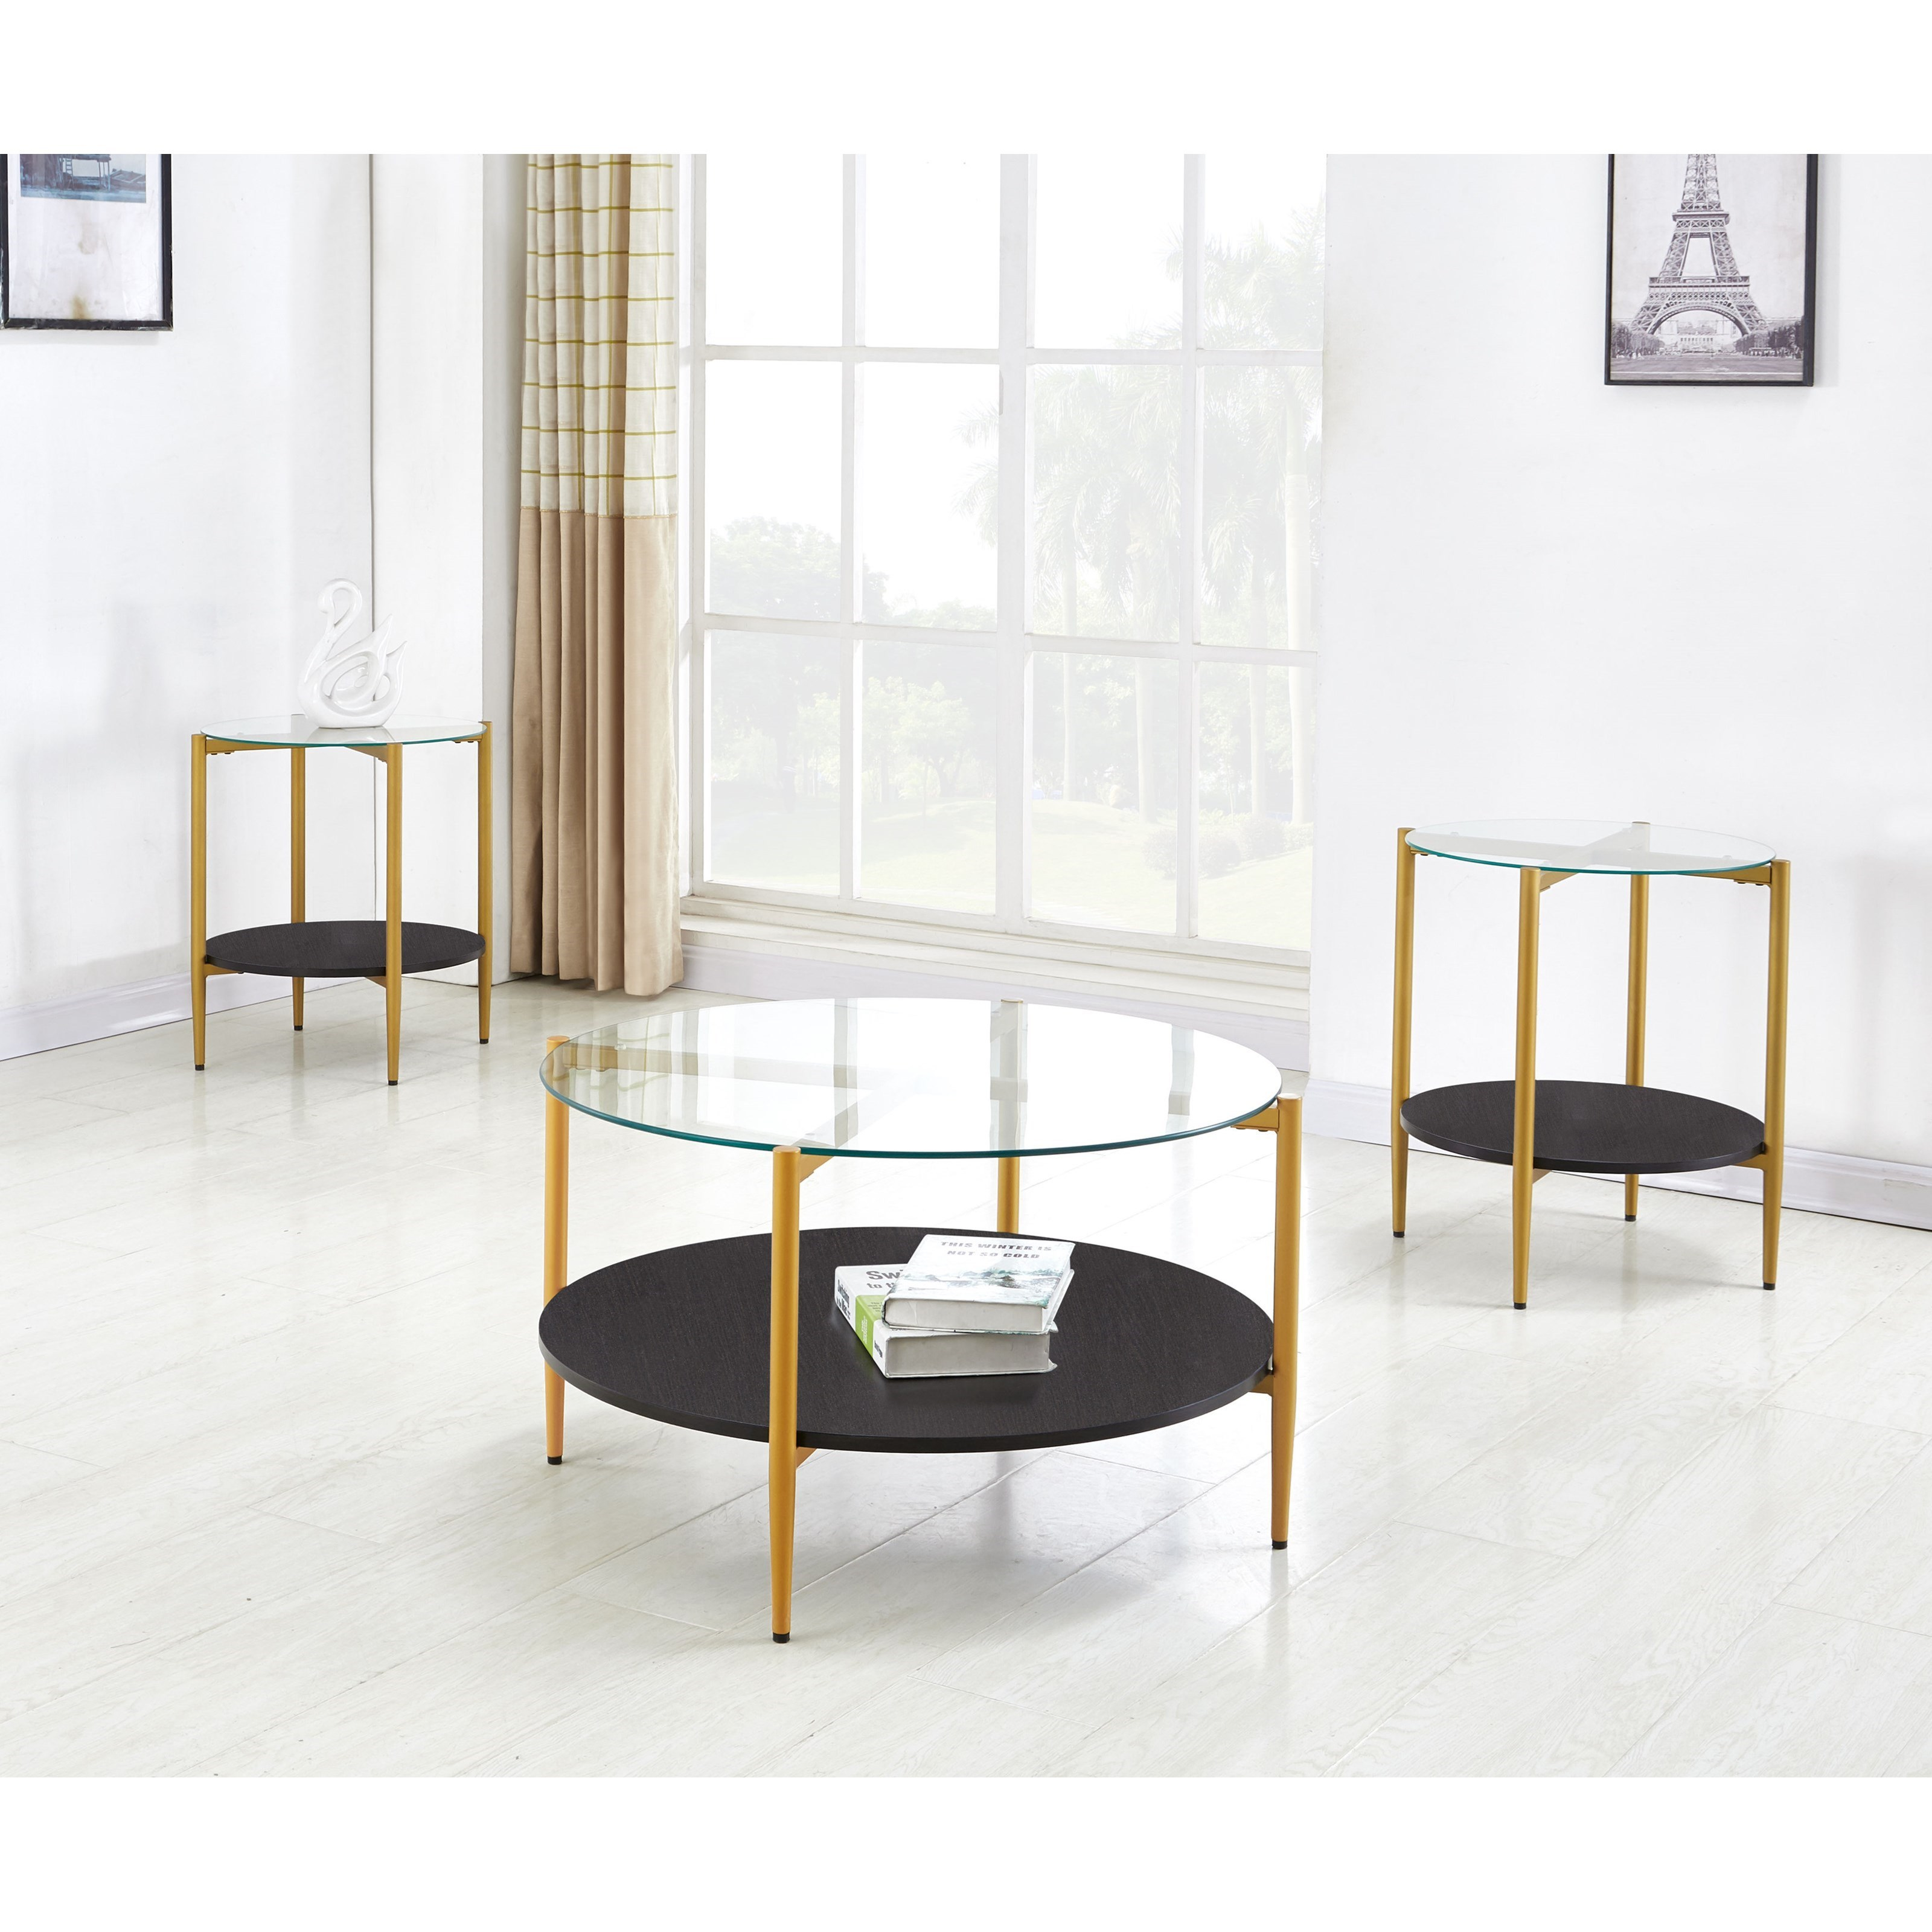 Rachel 3-Pack Occasional Tables by Steve Silver at Sam Levitz Outlet